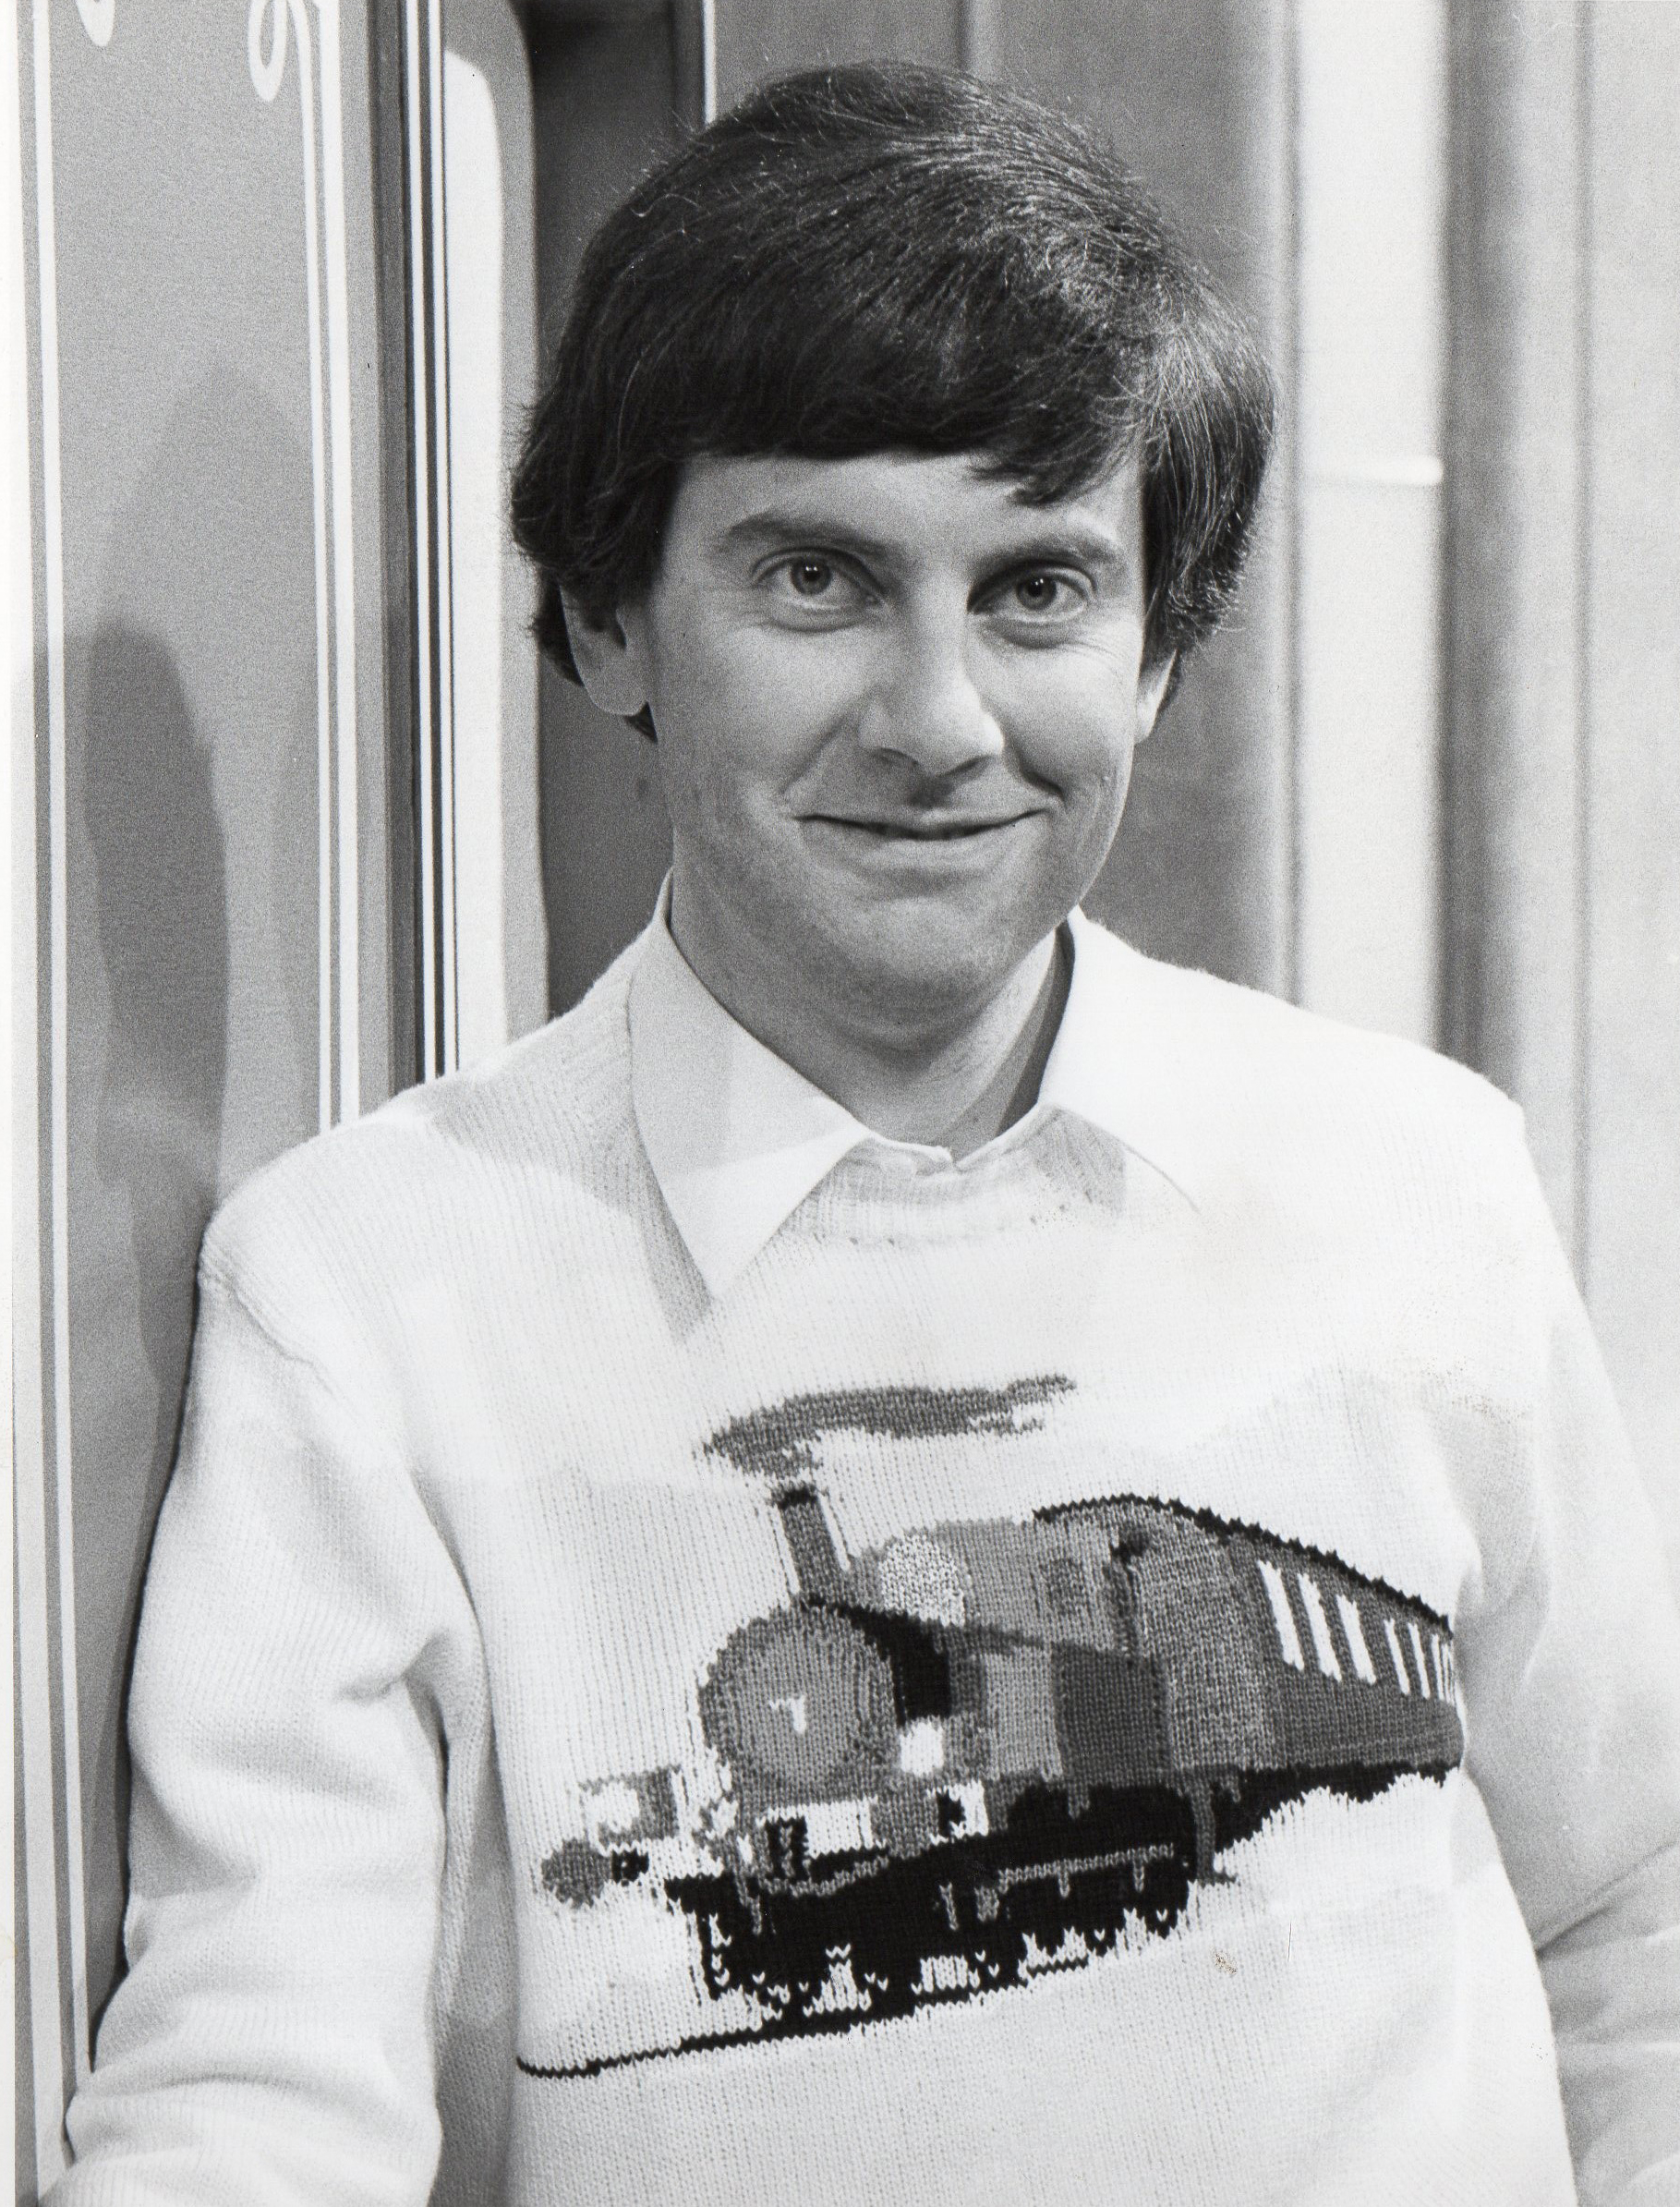 The Railway Carriage Game, BBC1, 1984-85